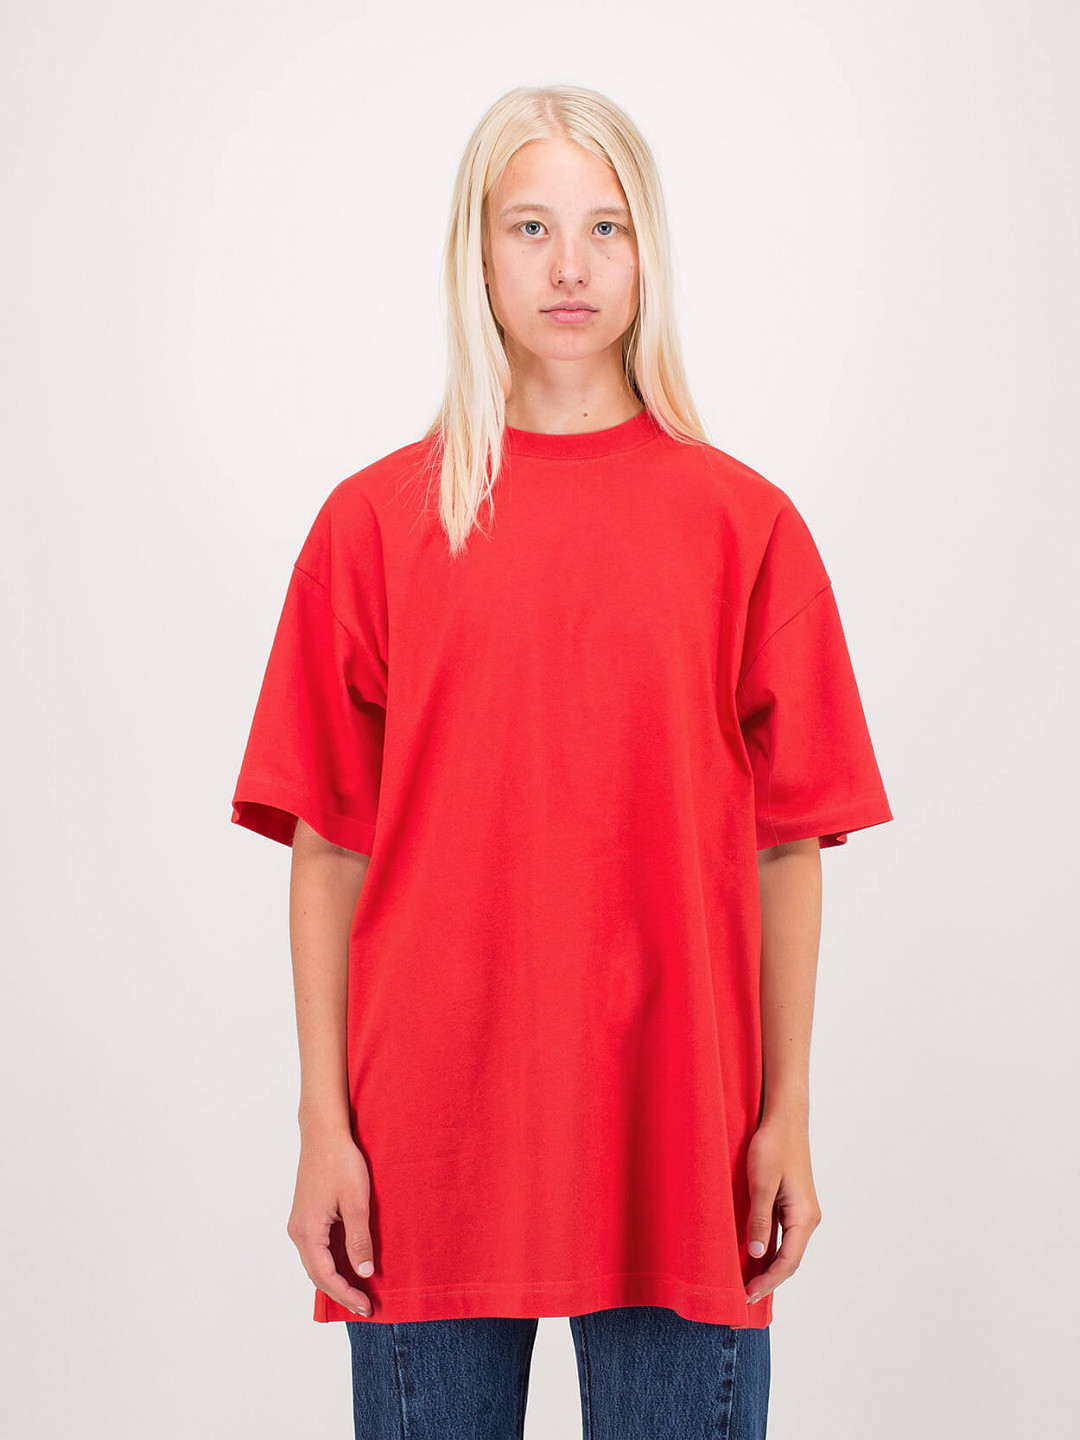 Atelier Patch Tee red